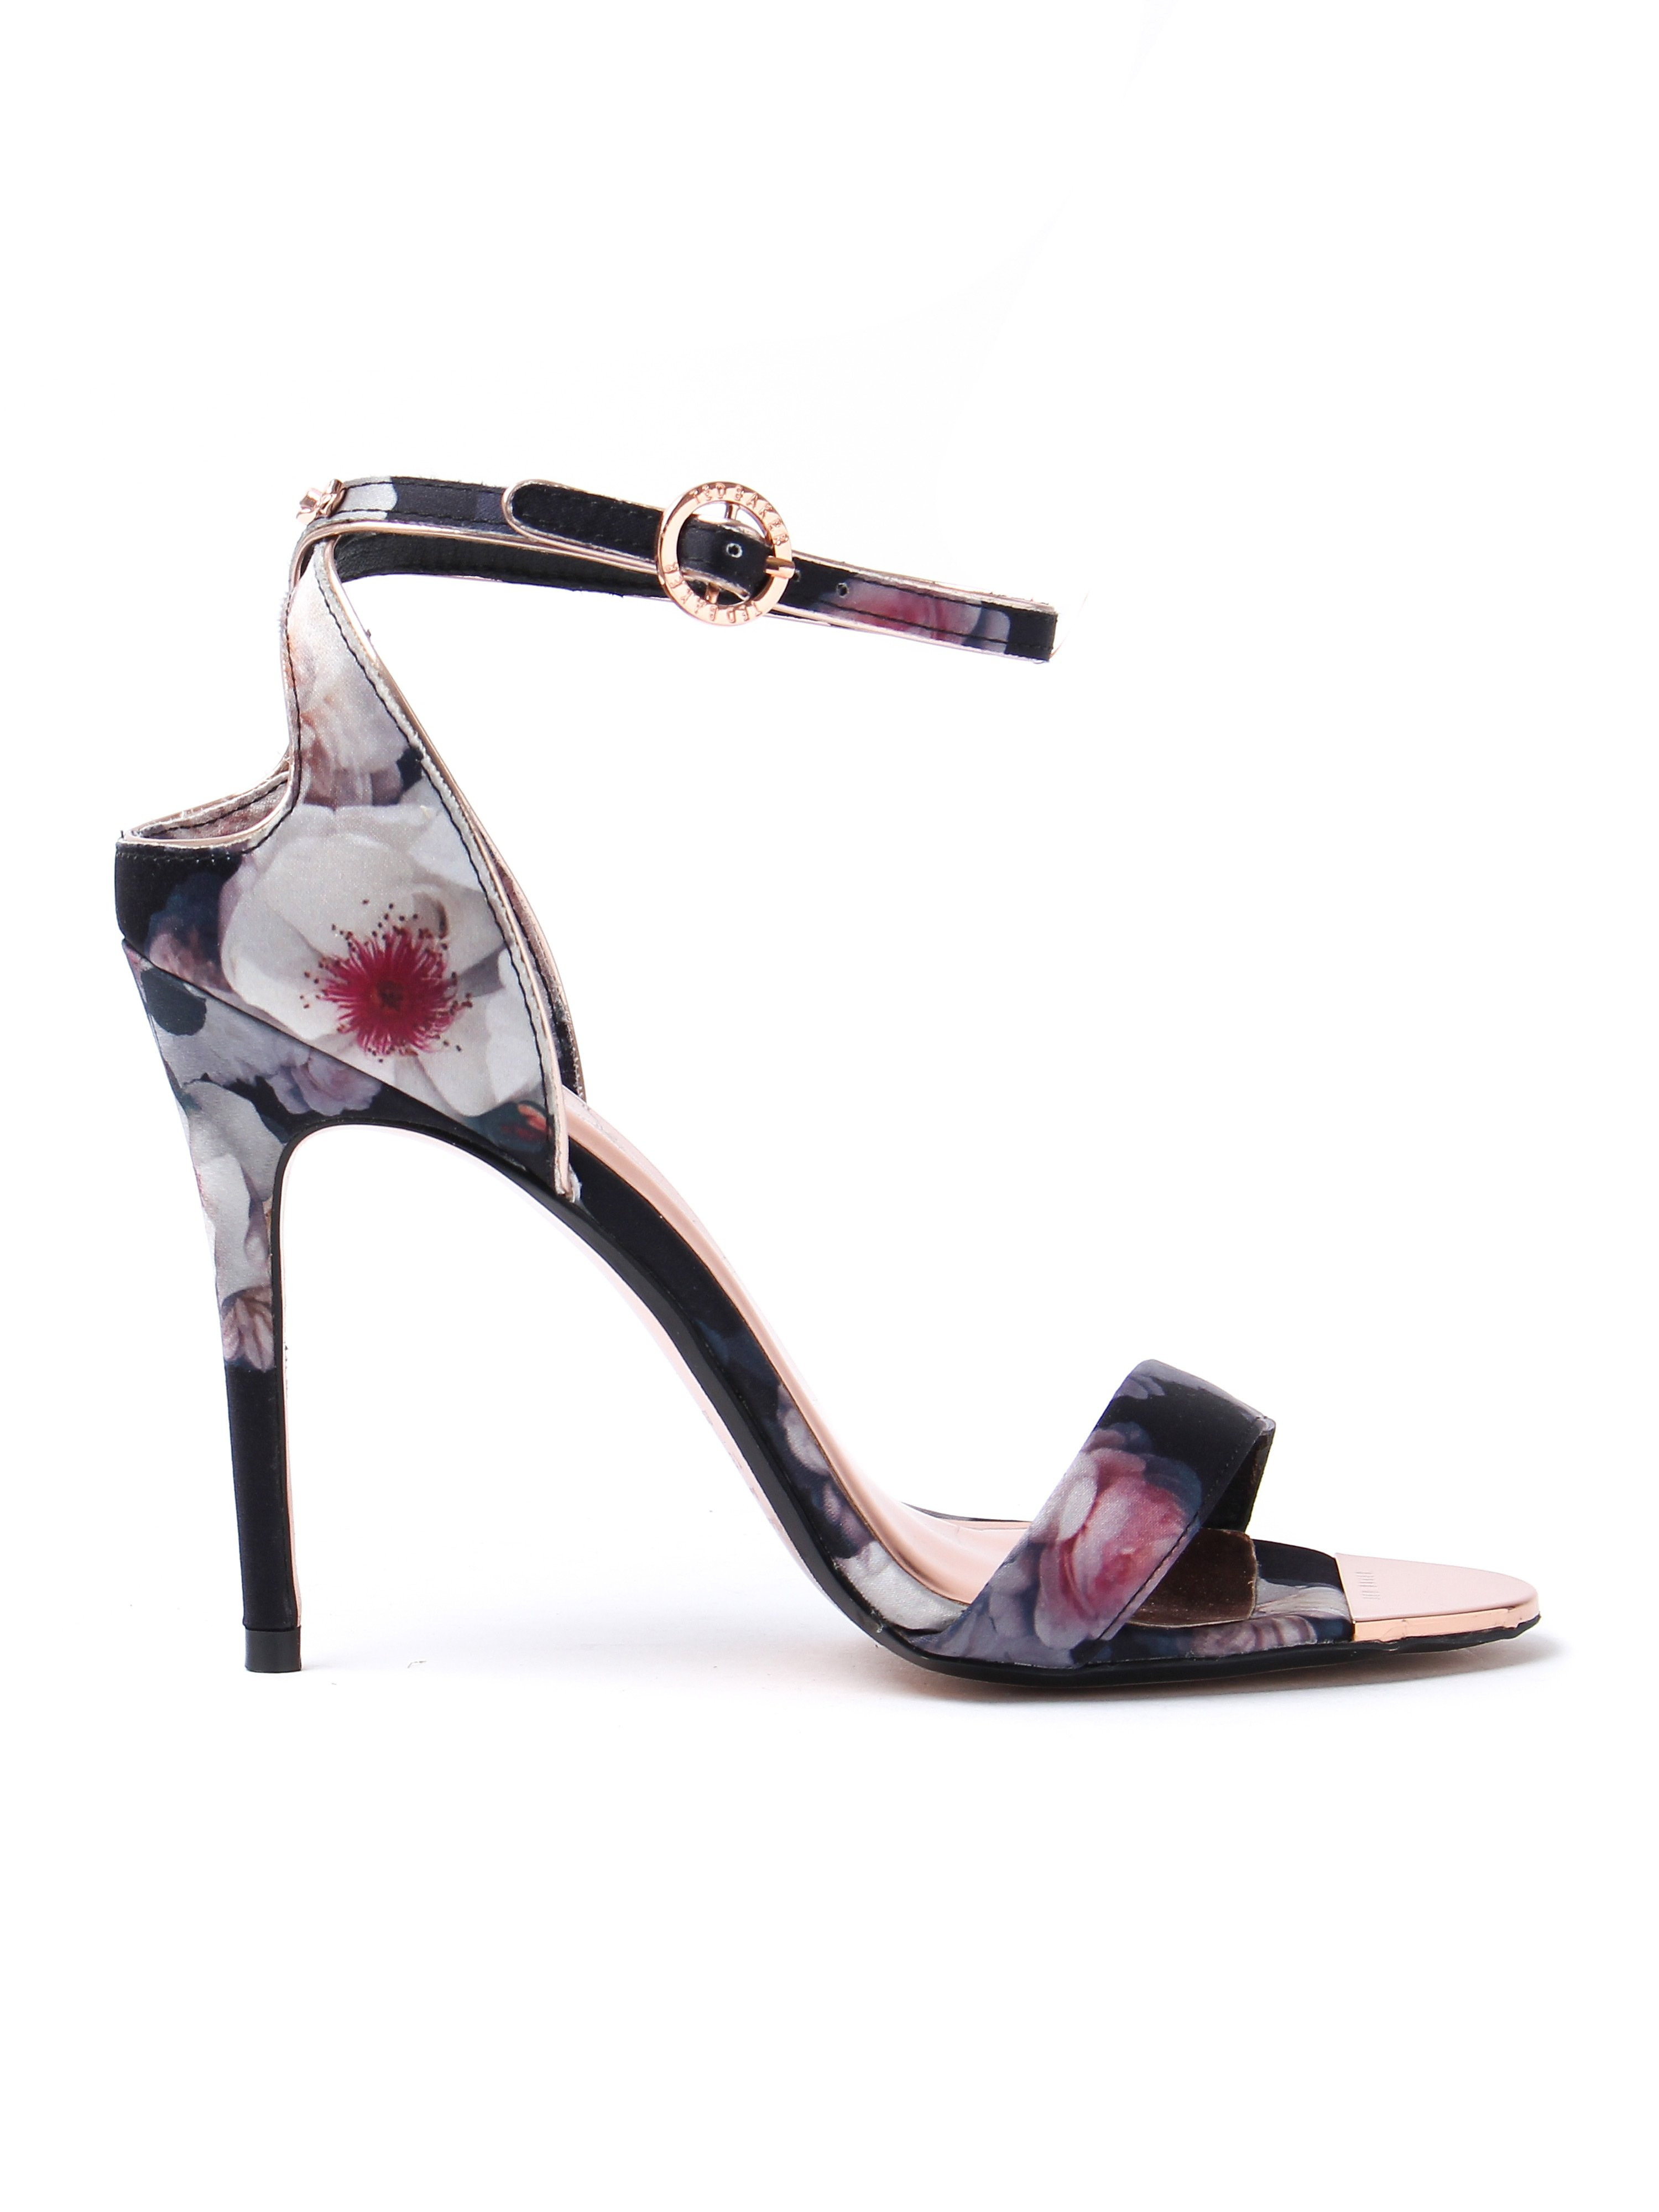 Ted Baker Women's Microbep Floral Sandals - Black Chelsea